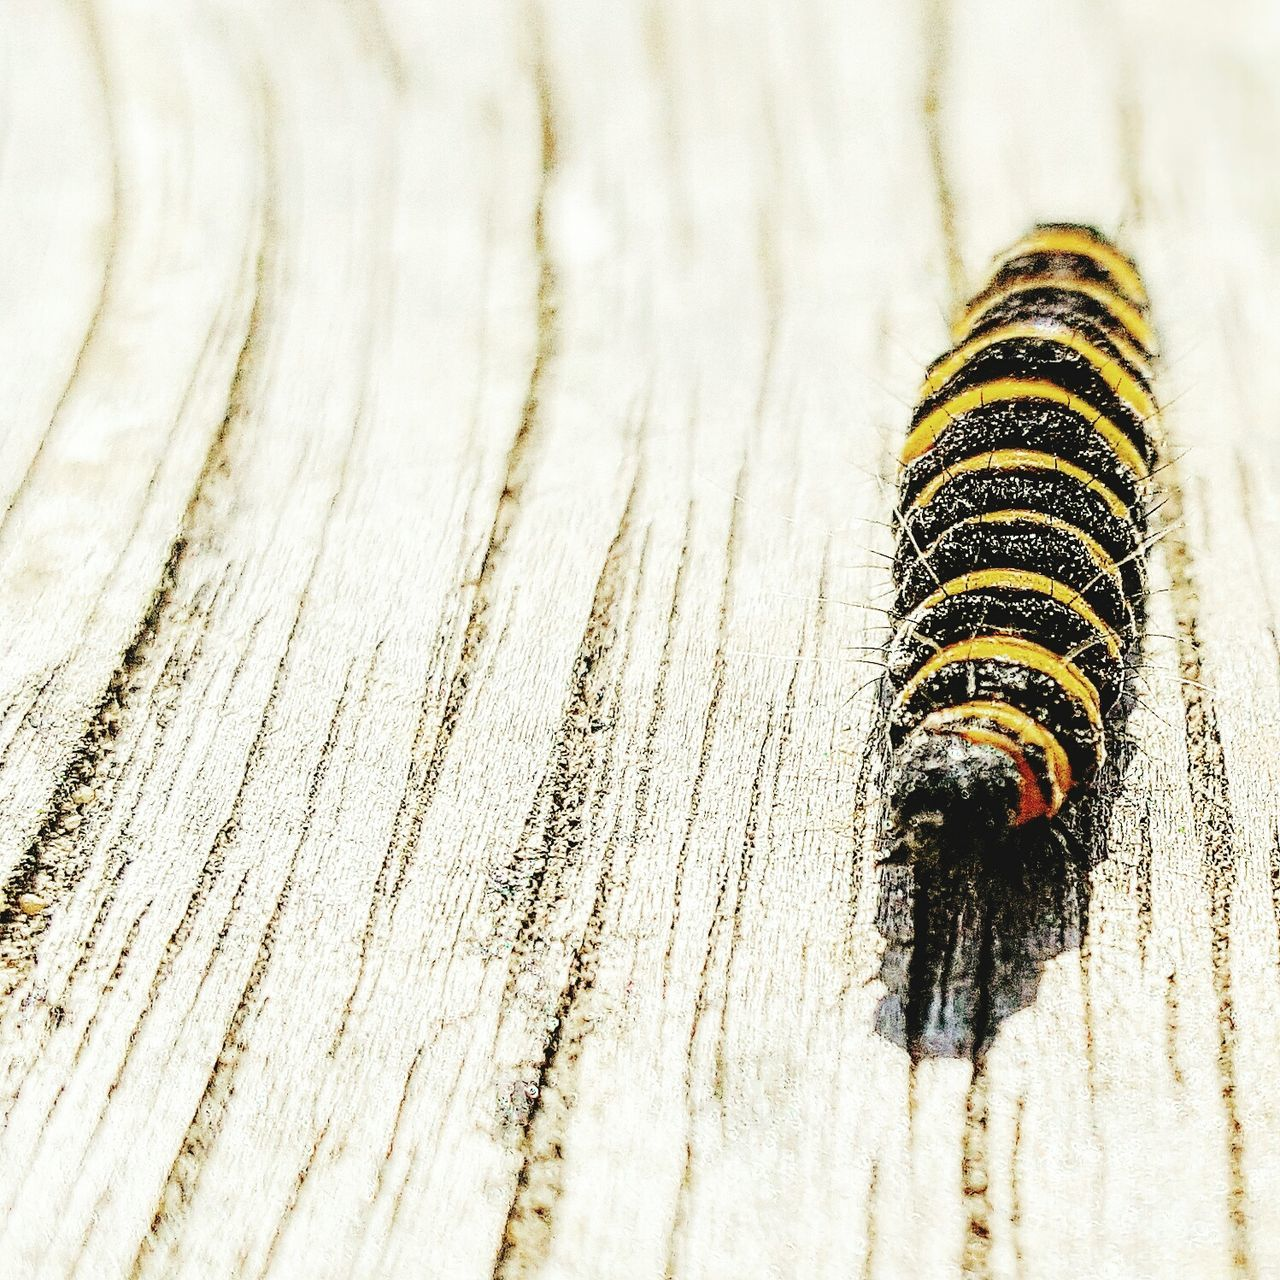 one animal, animal themes, wood - material, insect, close-up, no people, animals in the wild, textured, day, nature, outdoors